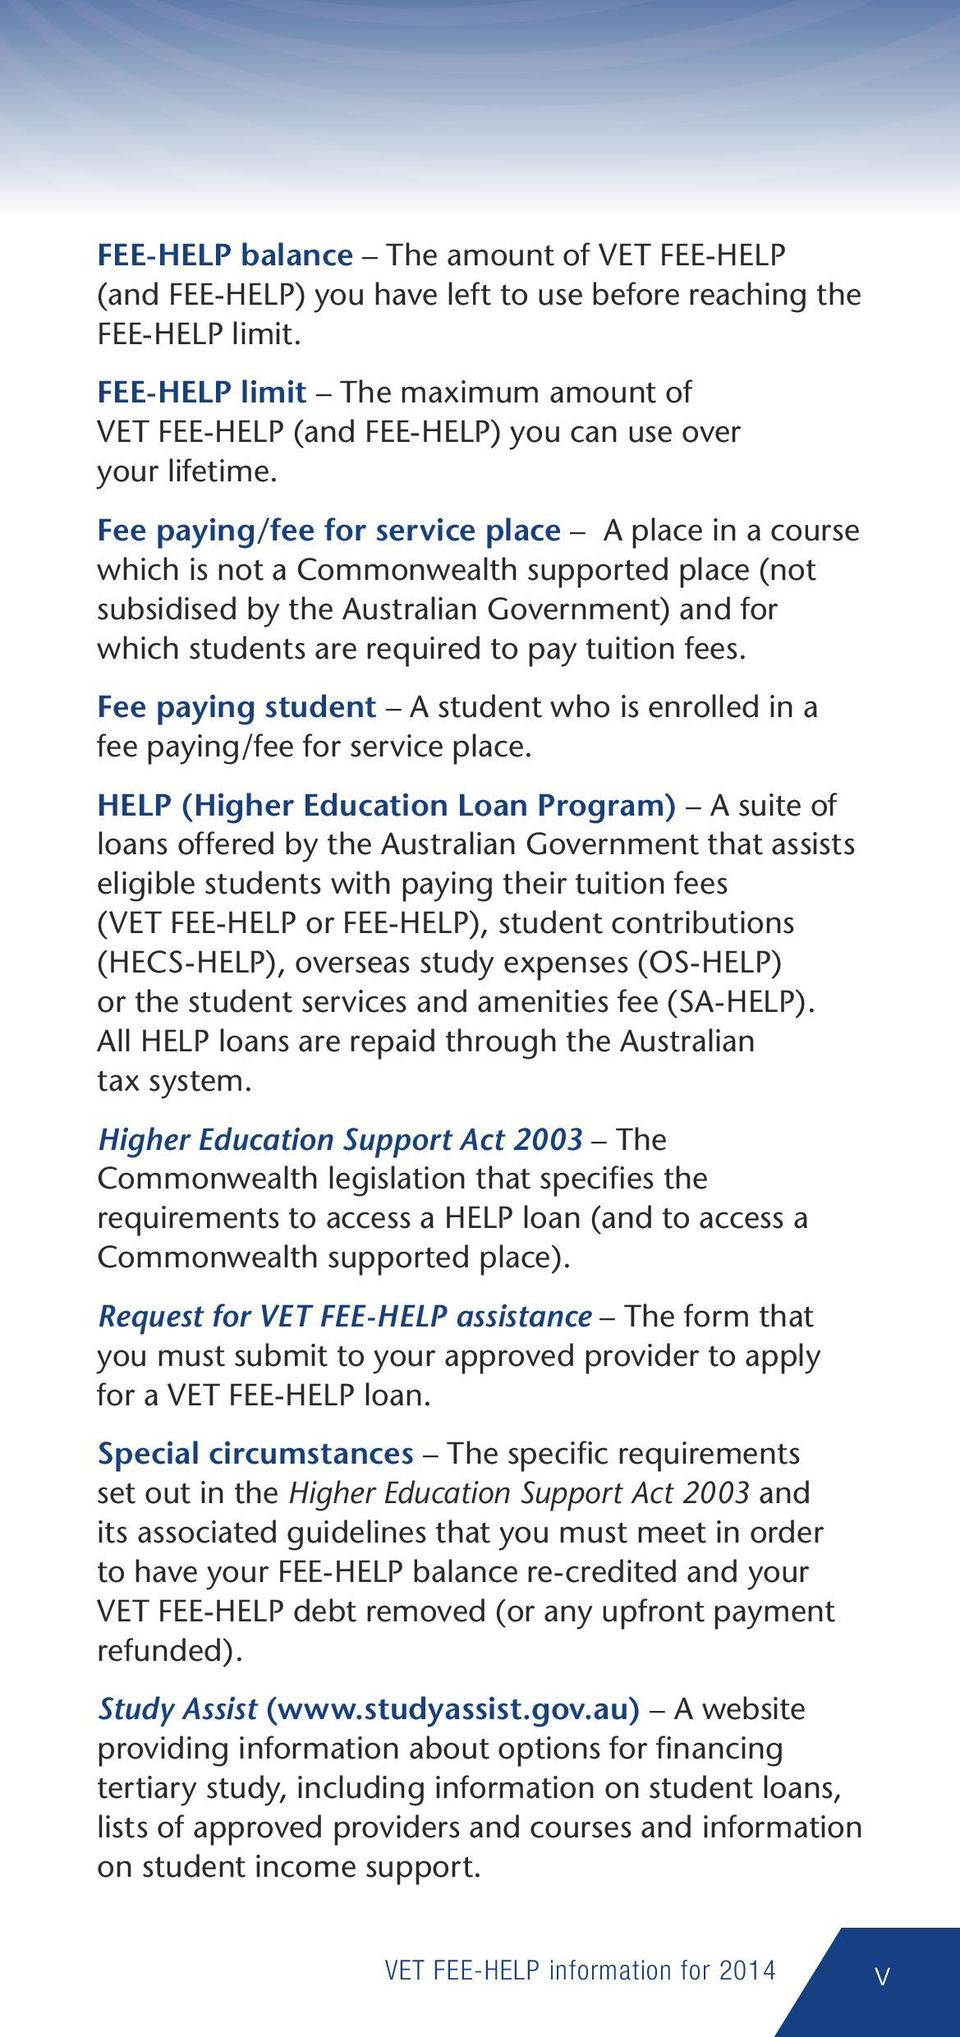 Fee paying/fee for service place A place in a course which is not a Commonwealth supported place (not subsidised by the Australian Government) and for which students are required to pay tuition fees.